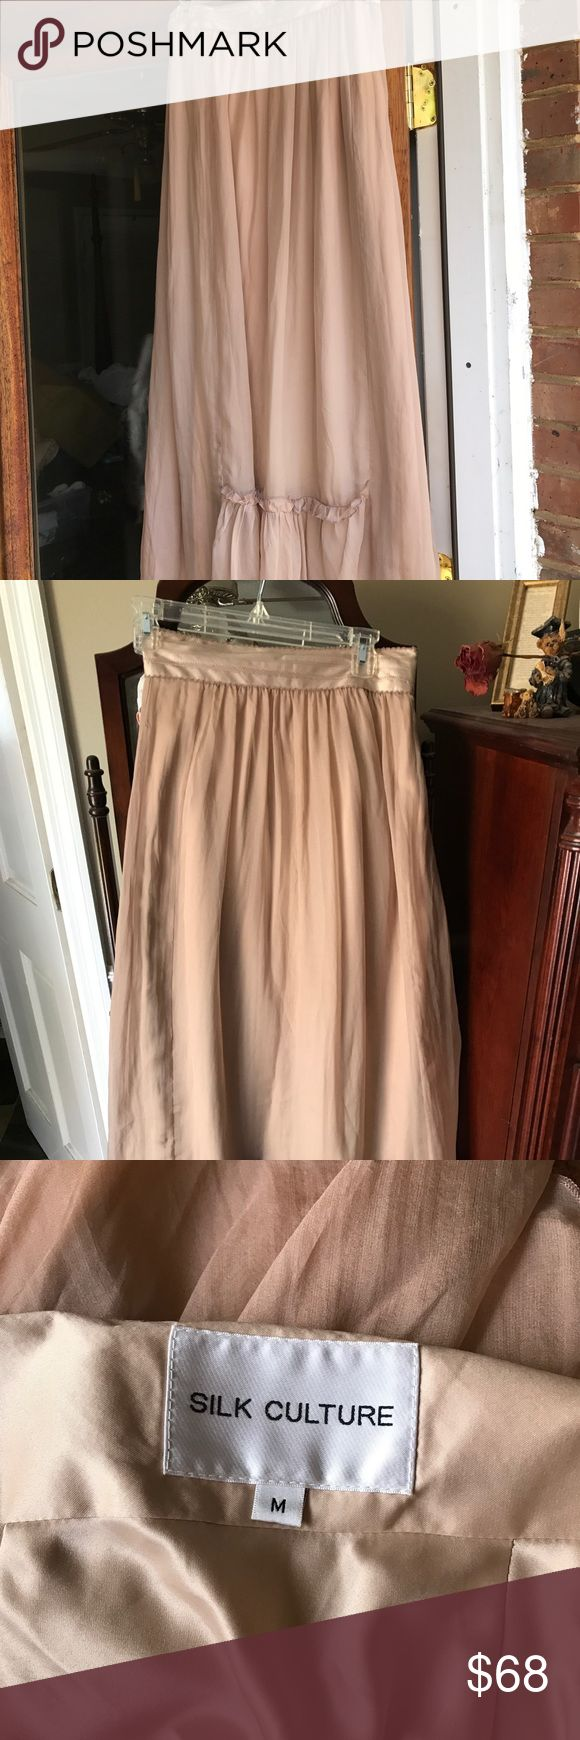 Silk Culture maxi skirt Beautiful tan maxi skirt lined with wide band at the waist zipper closure silk Culture Skirts Maxi